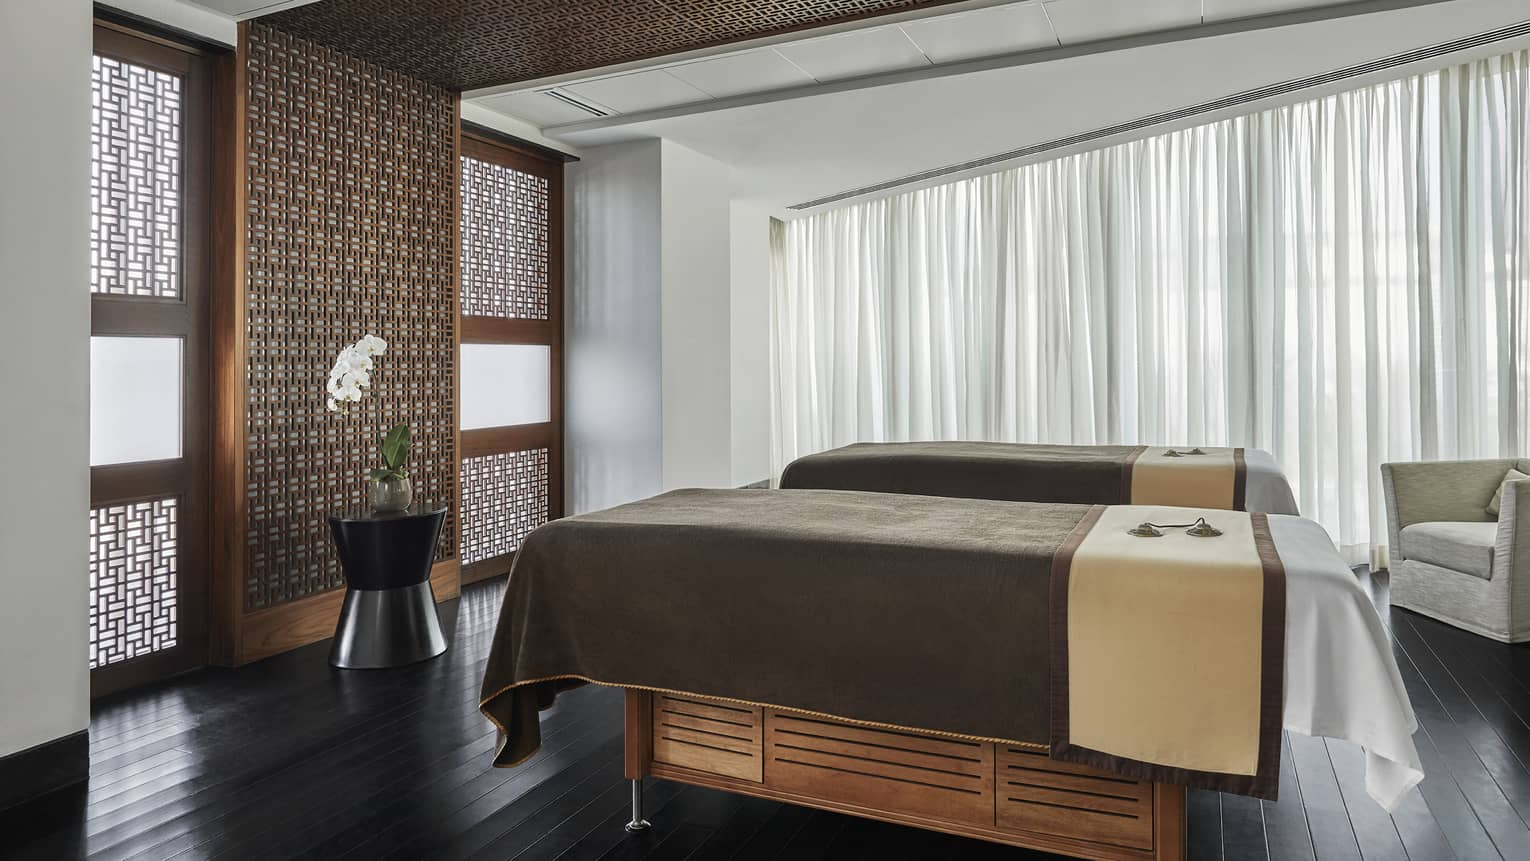 Pearl Spa side by side couples massage beds in treatment room with wood accent walls